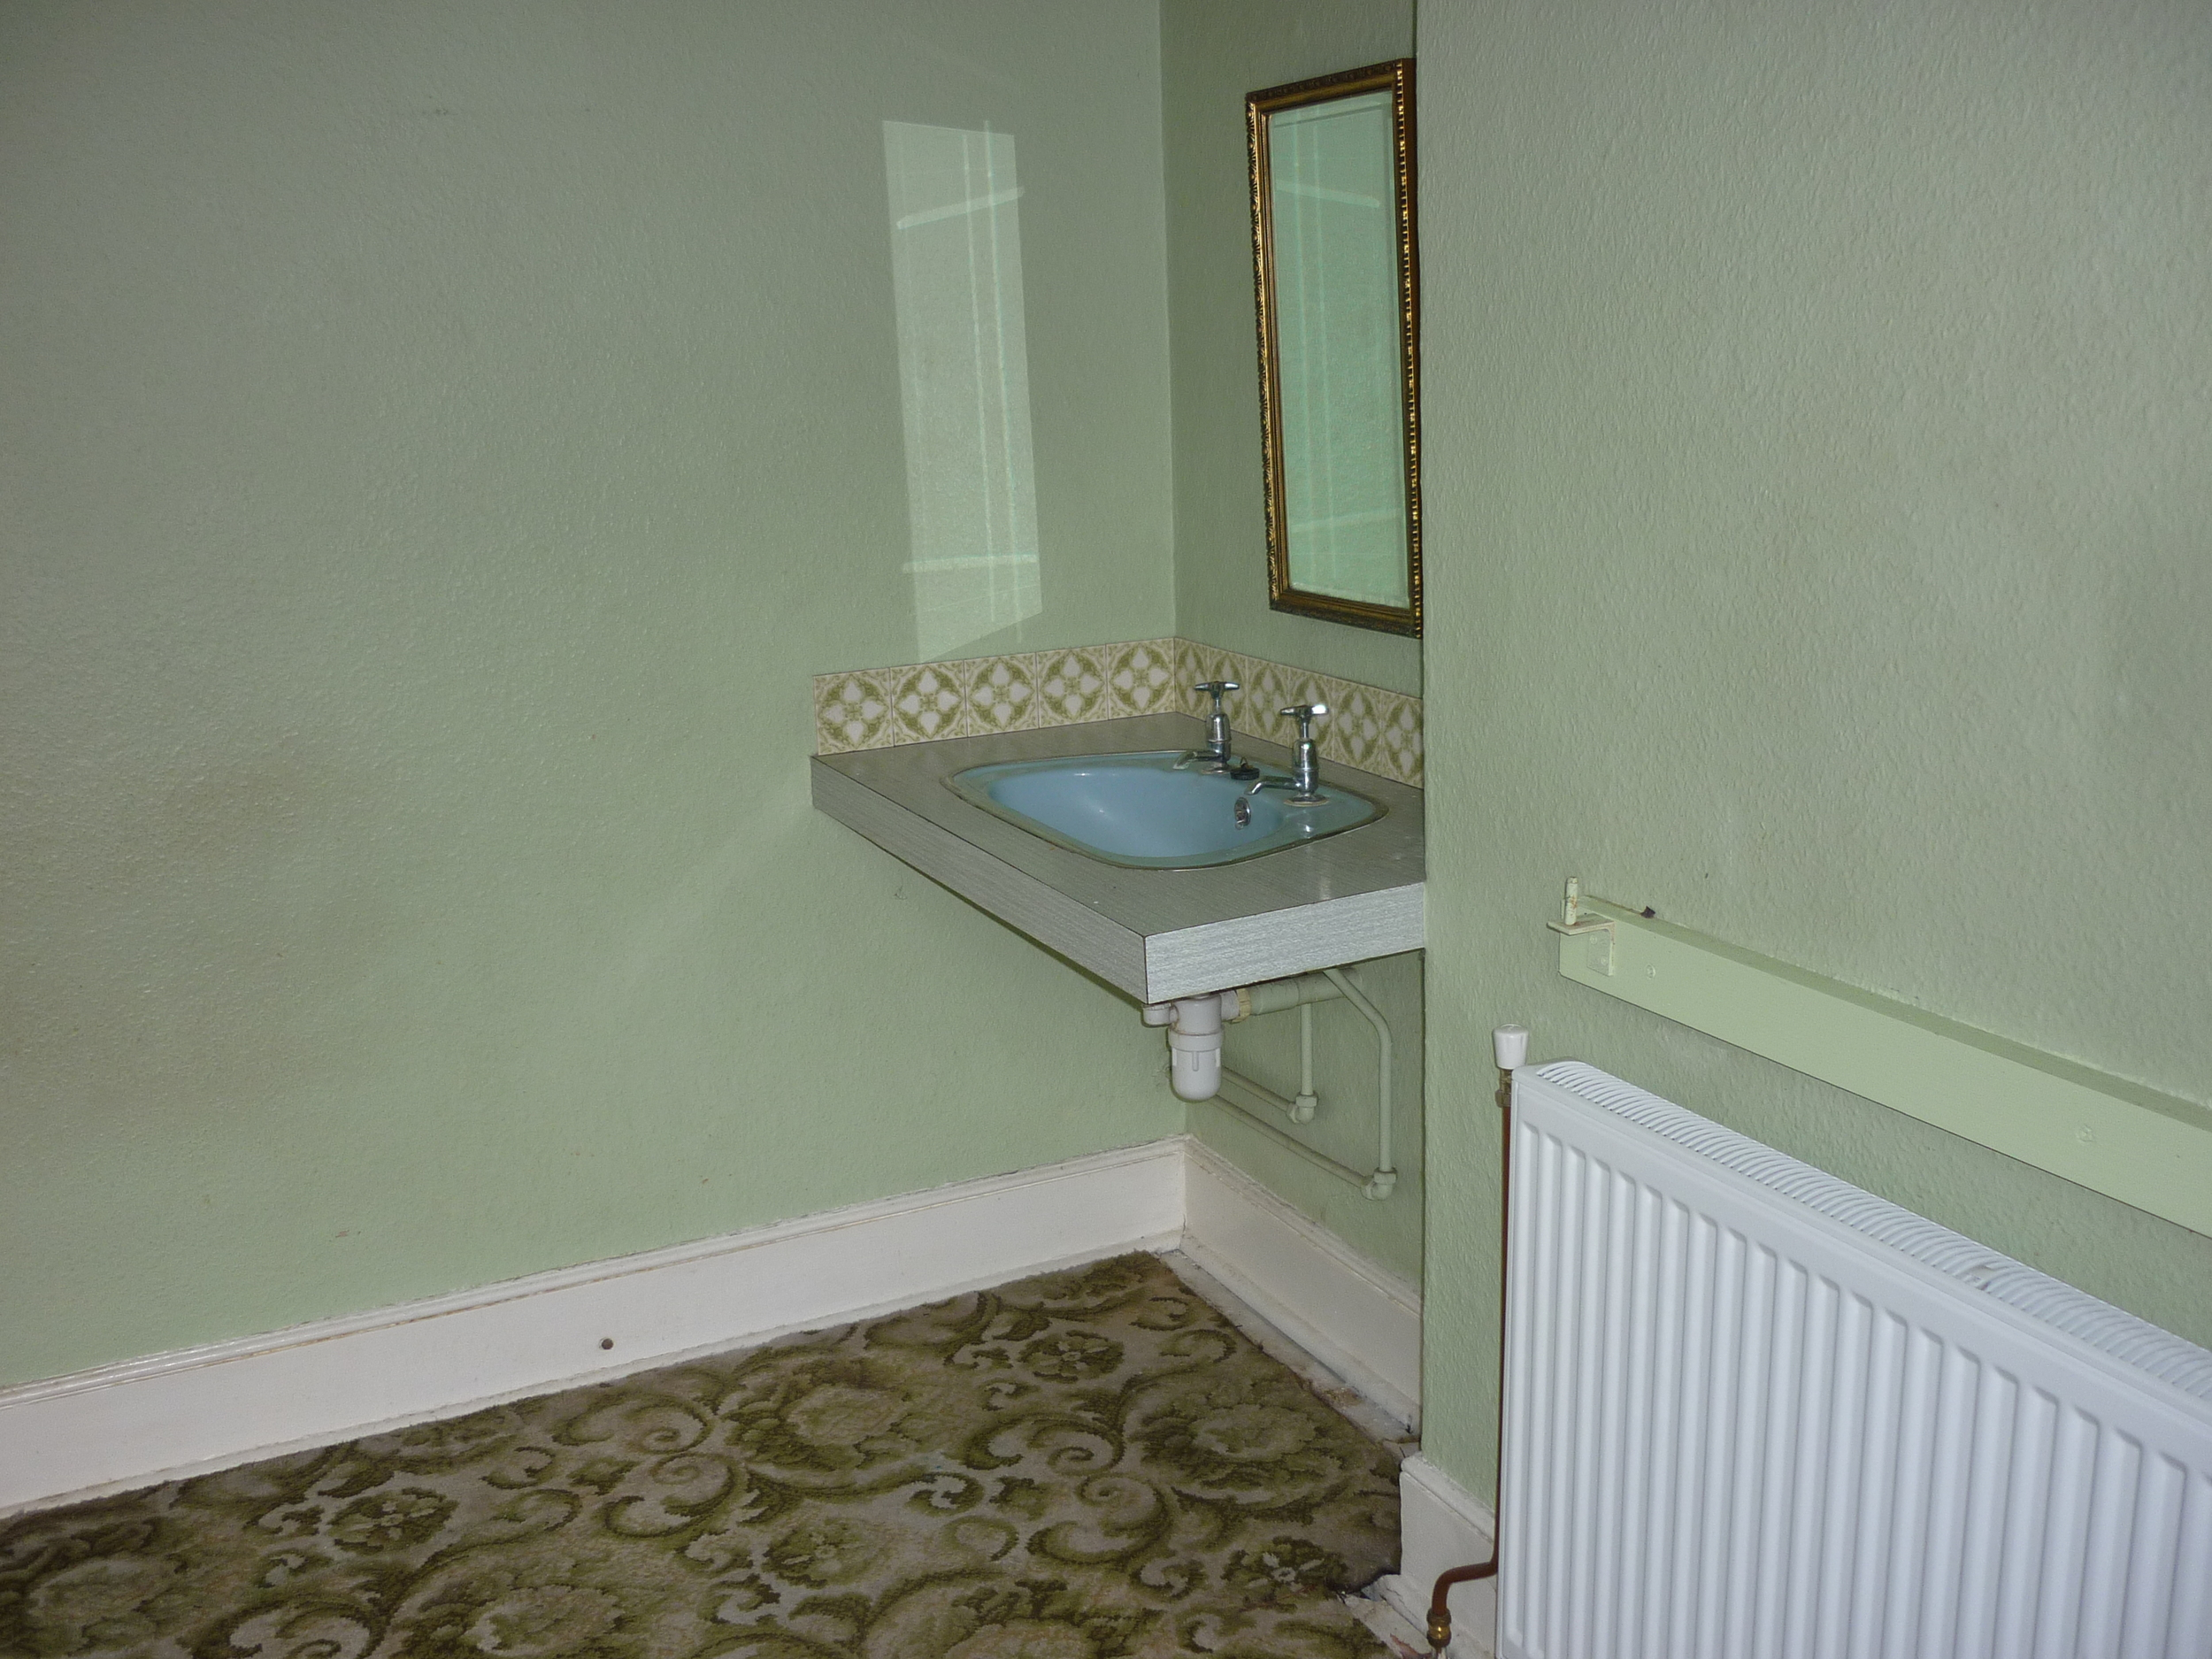 sink-in-bedroom.JPG